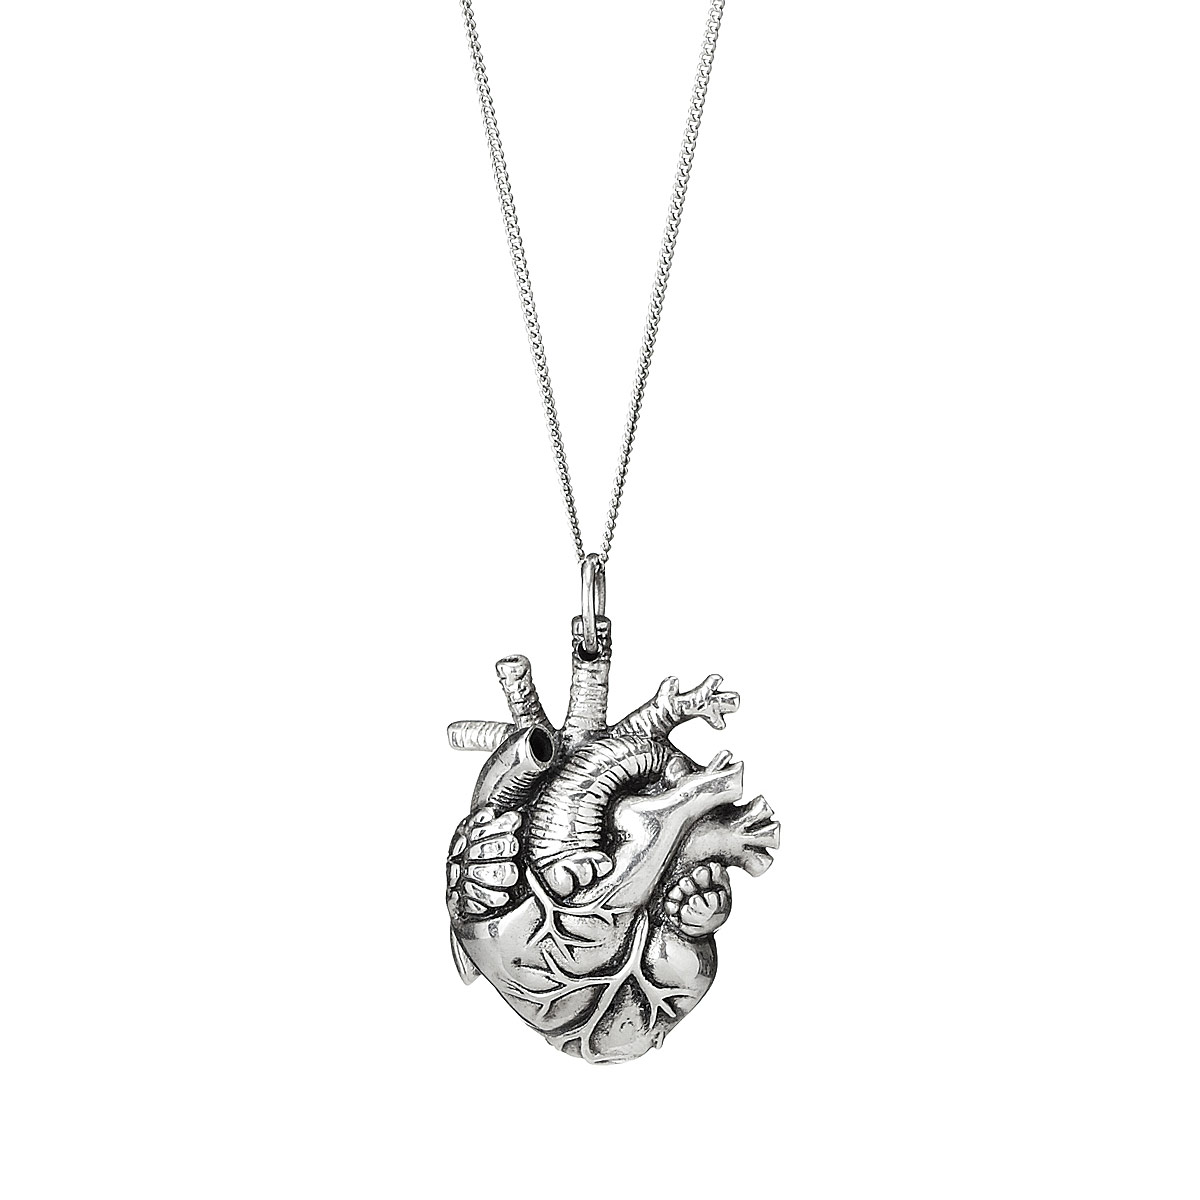 heart pendant necklace anatomical heart pendant 2 thumbnail edeljjr